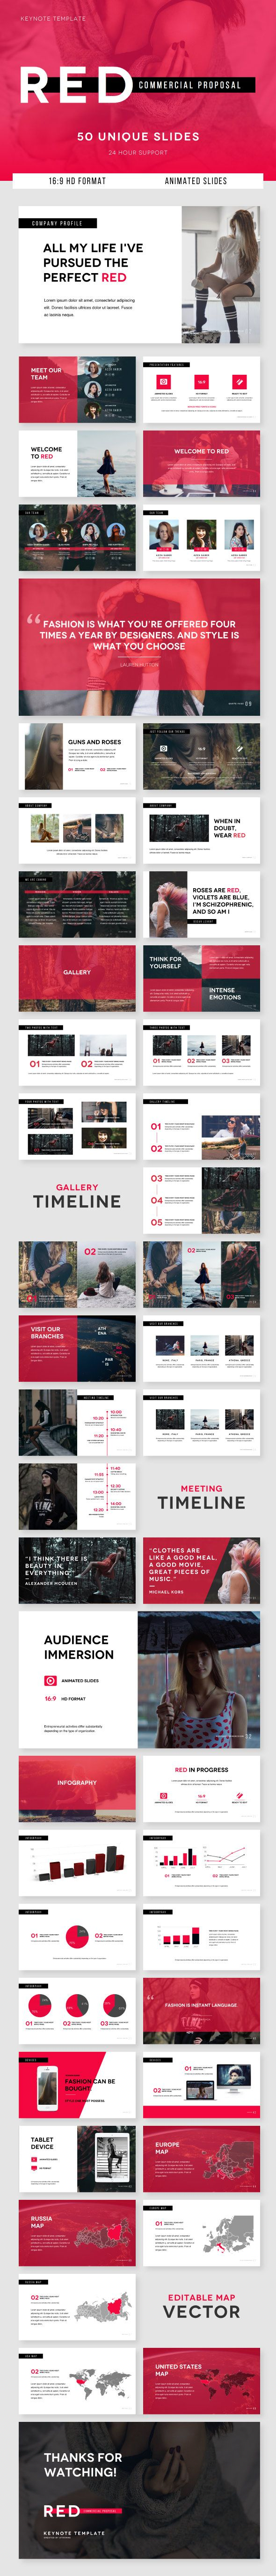 RED Commercial Proposal - Keynote Template - Business Keynote Templates